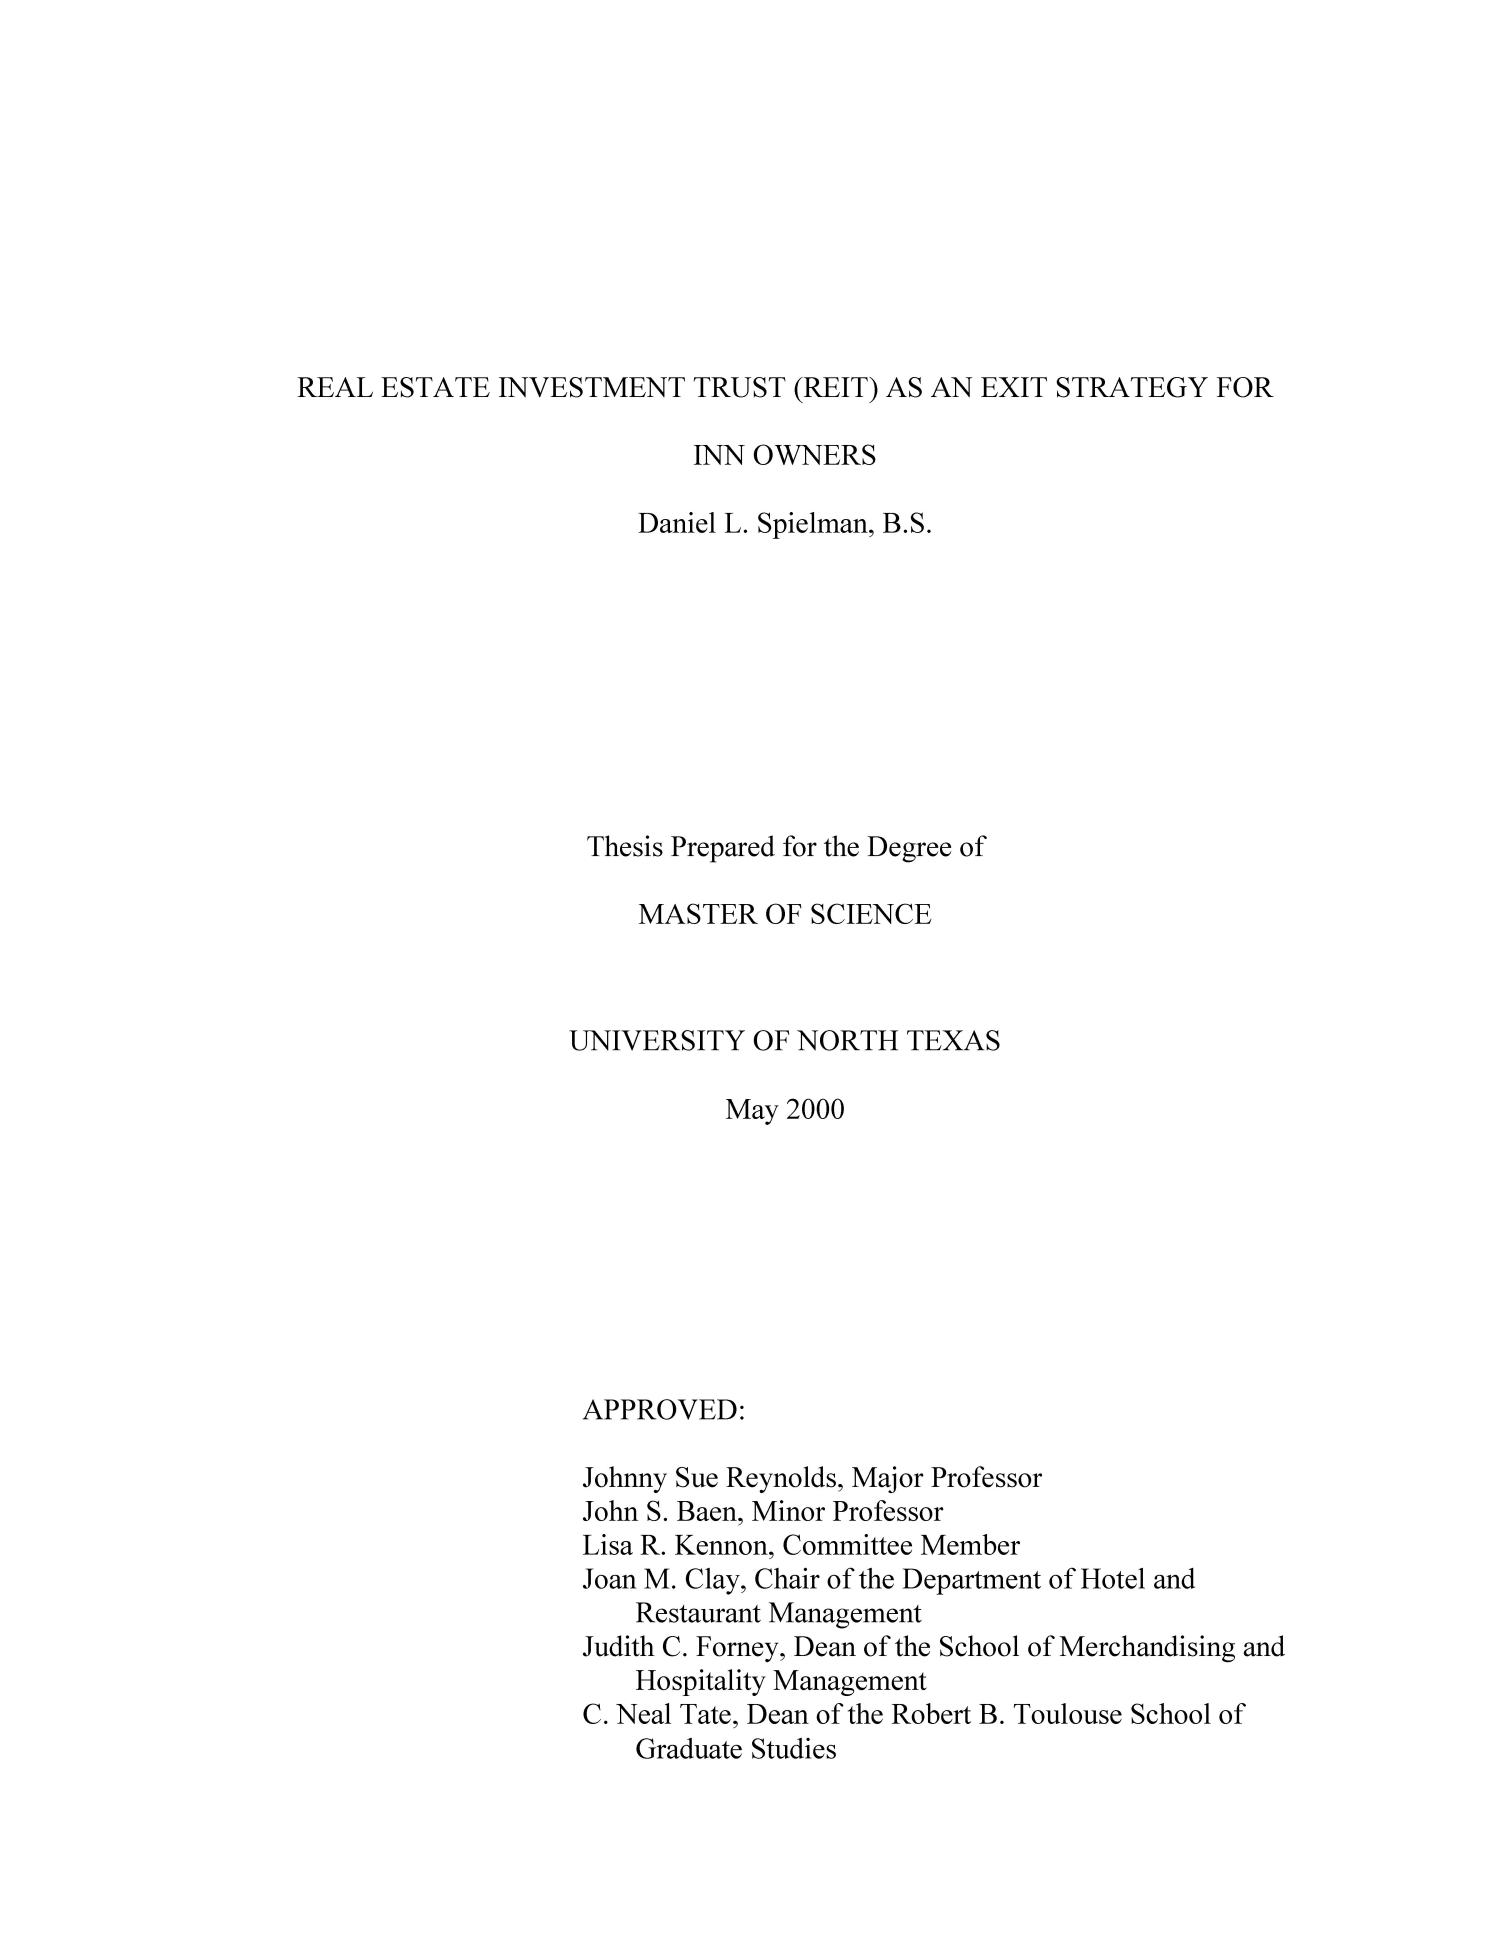 Dissertation proposal real estate management